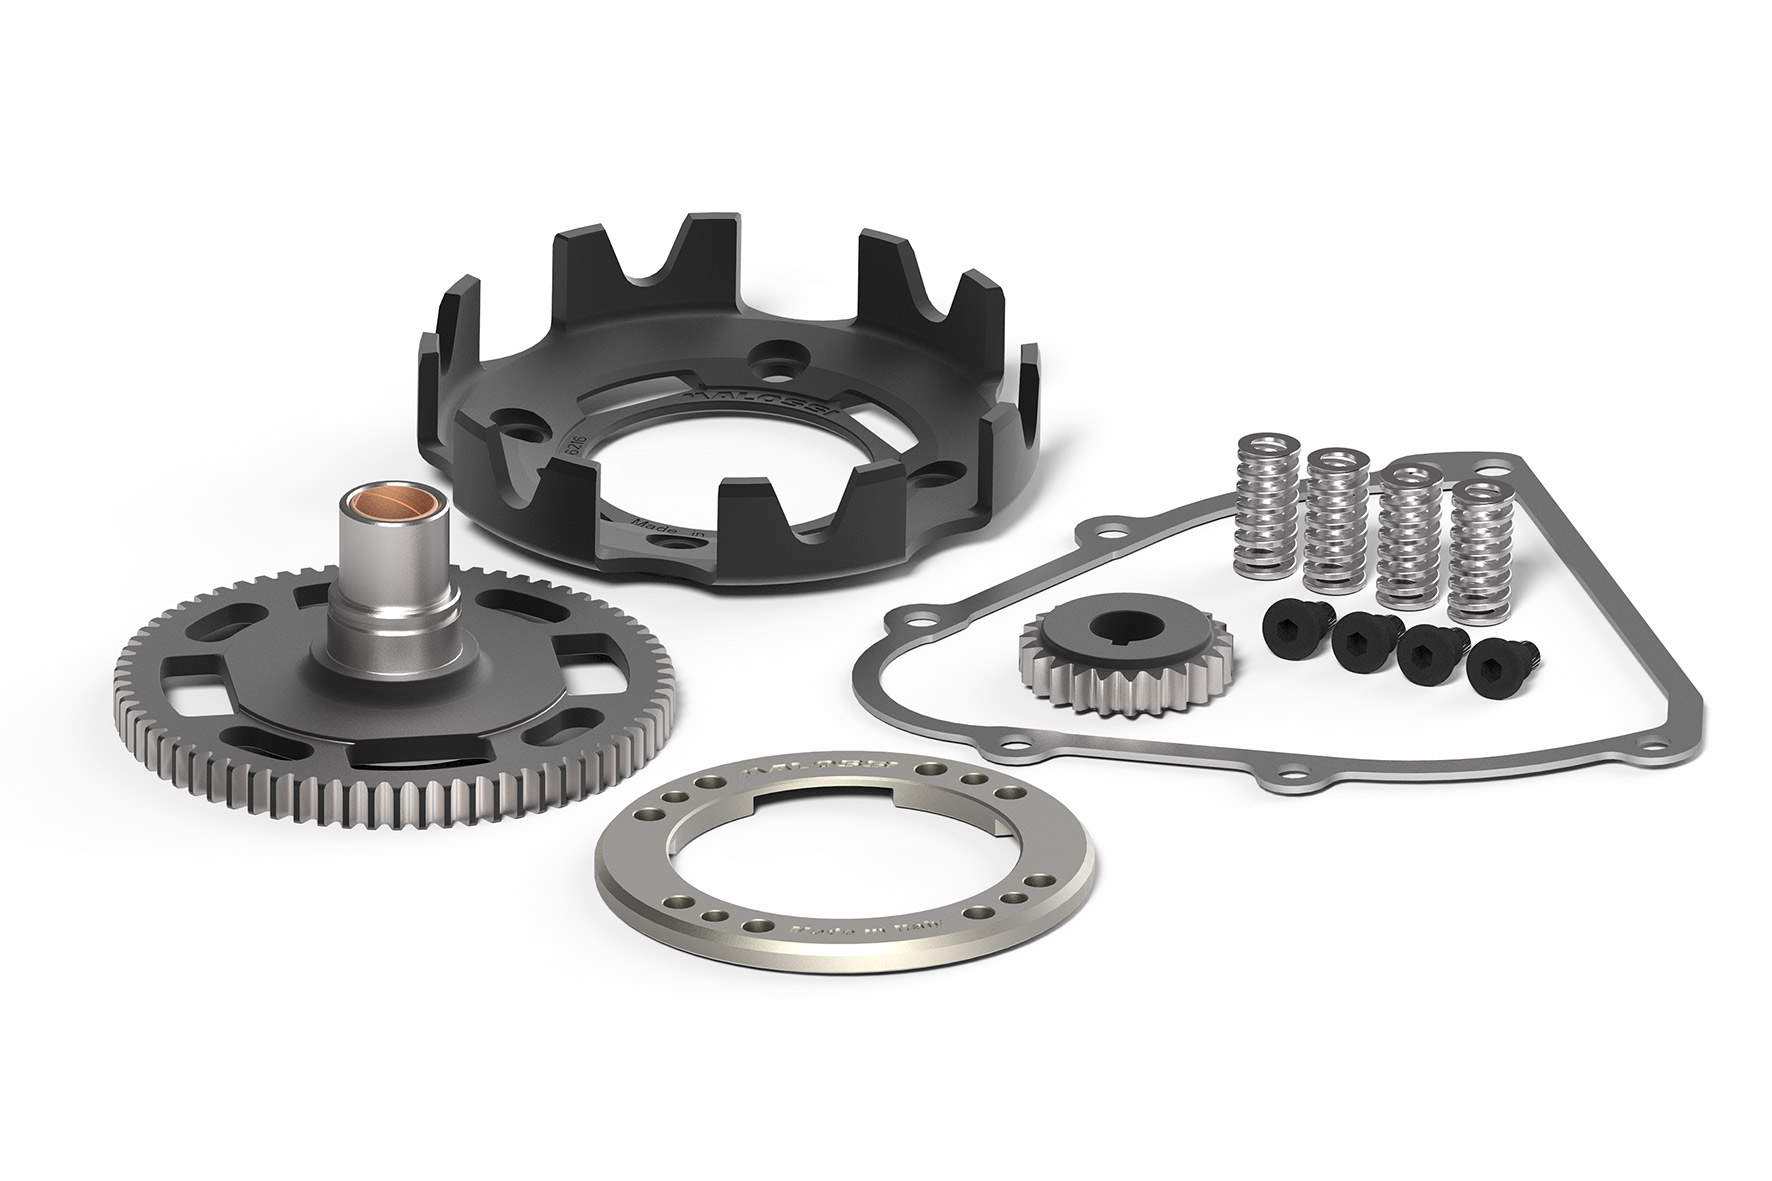 PRIMARY GEARS z 24/72 with FLEXIBLE COUPLING